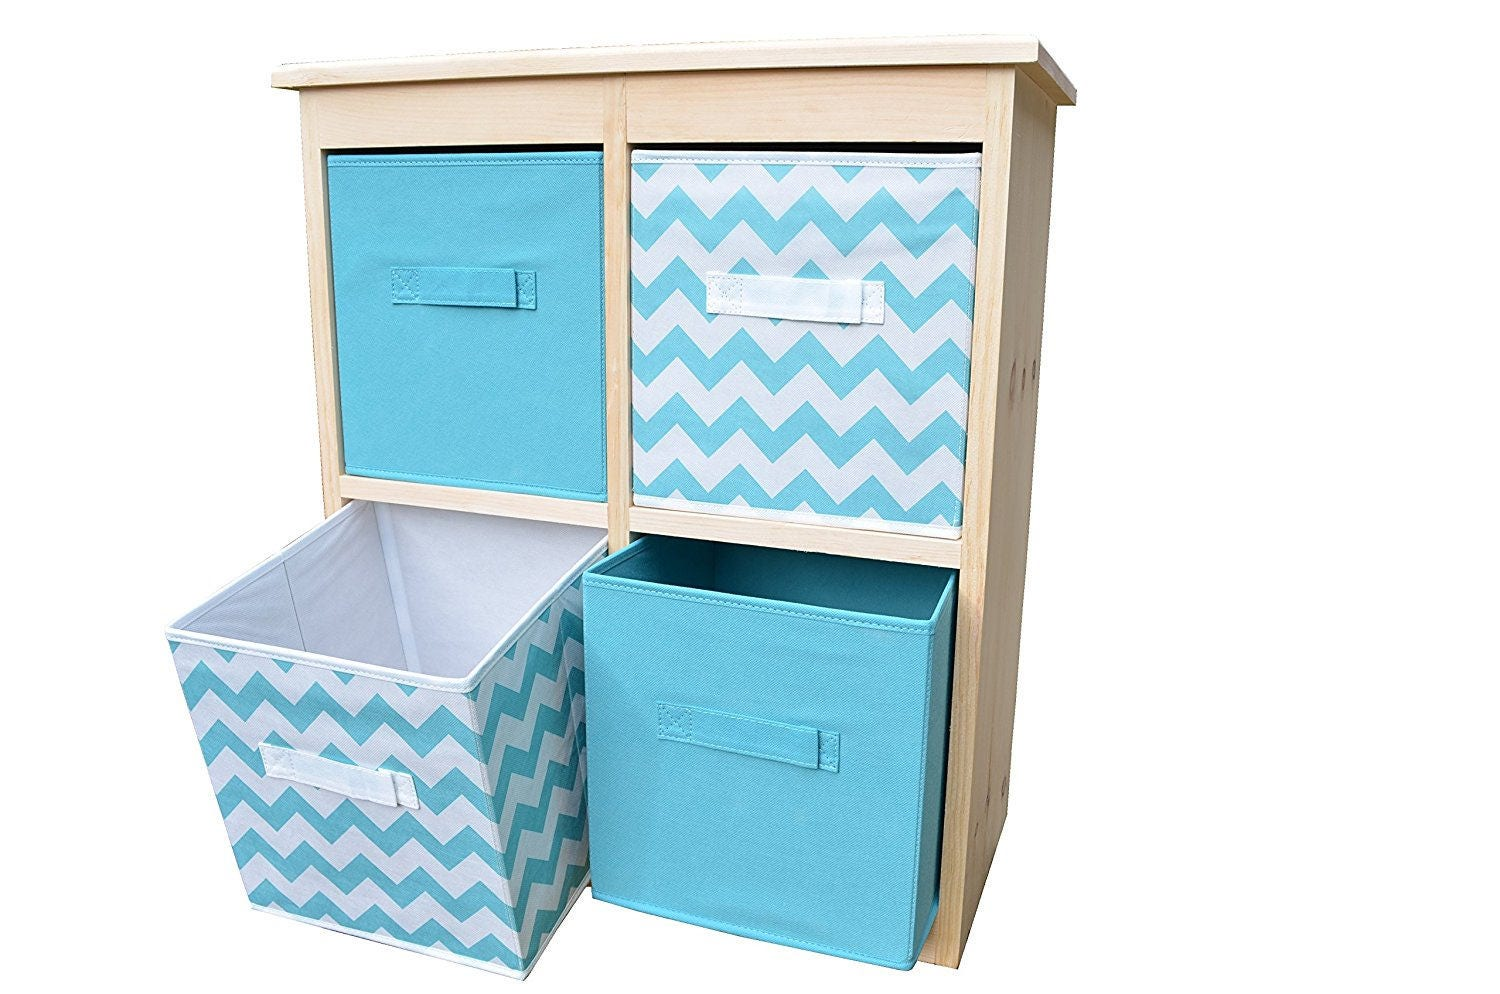 unfinished solid pine wood 4 hole cube storage organization etsy. Black Bedroom Furniture Sets. Home Design Ideas